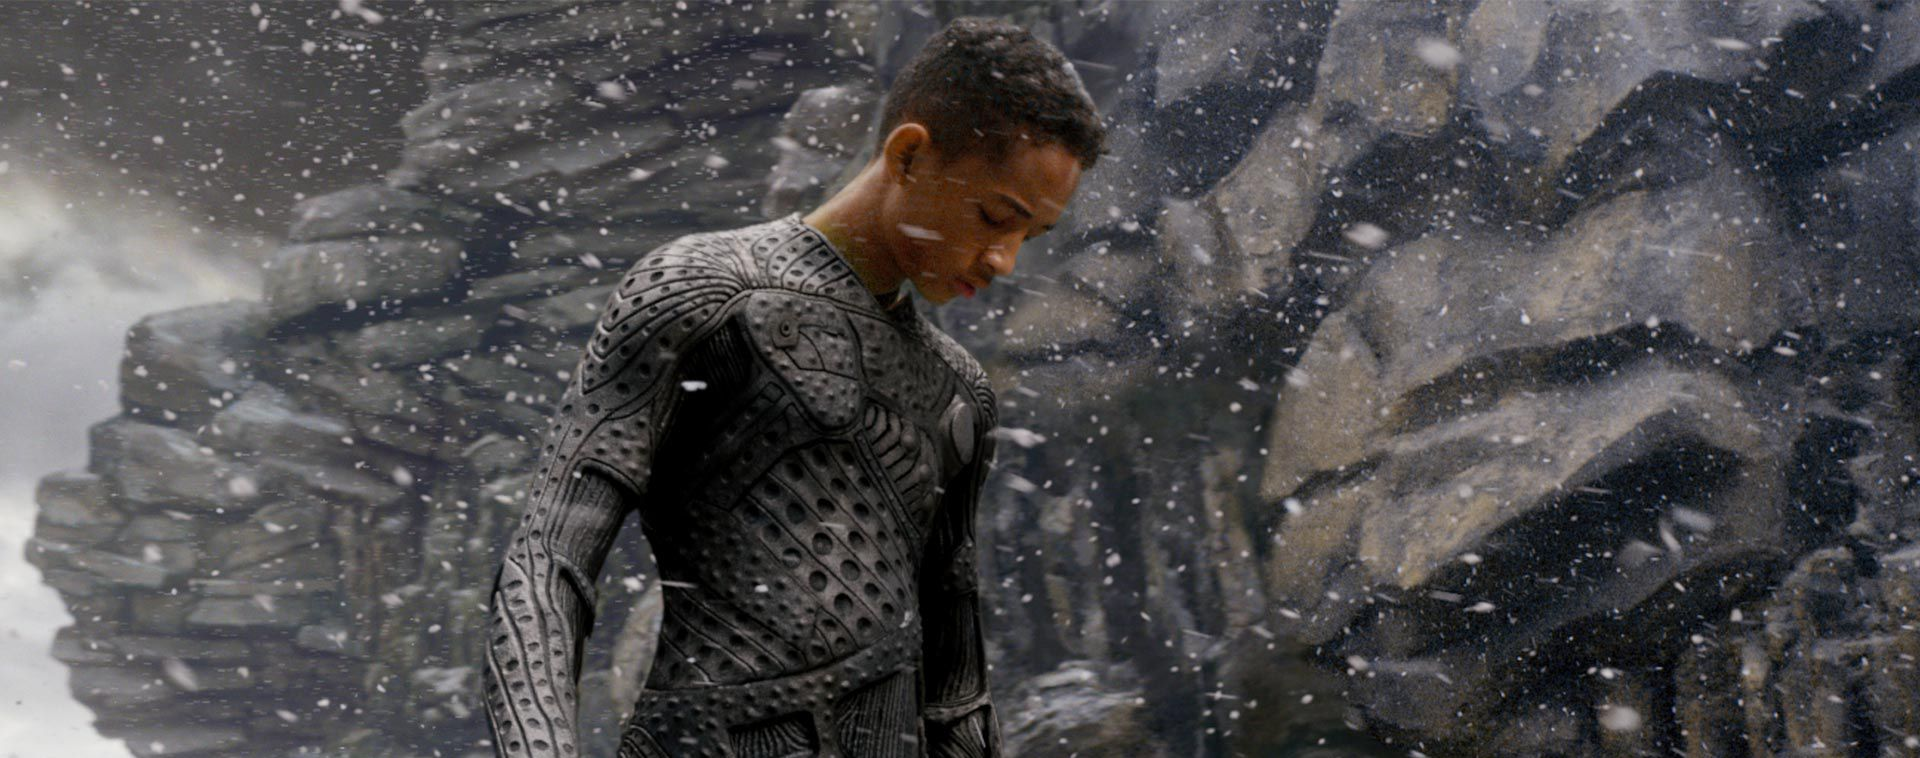 An image from After Earth